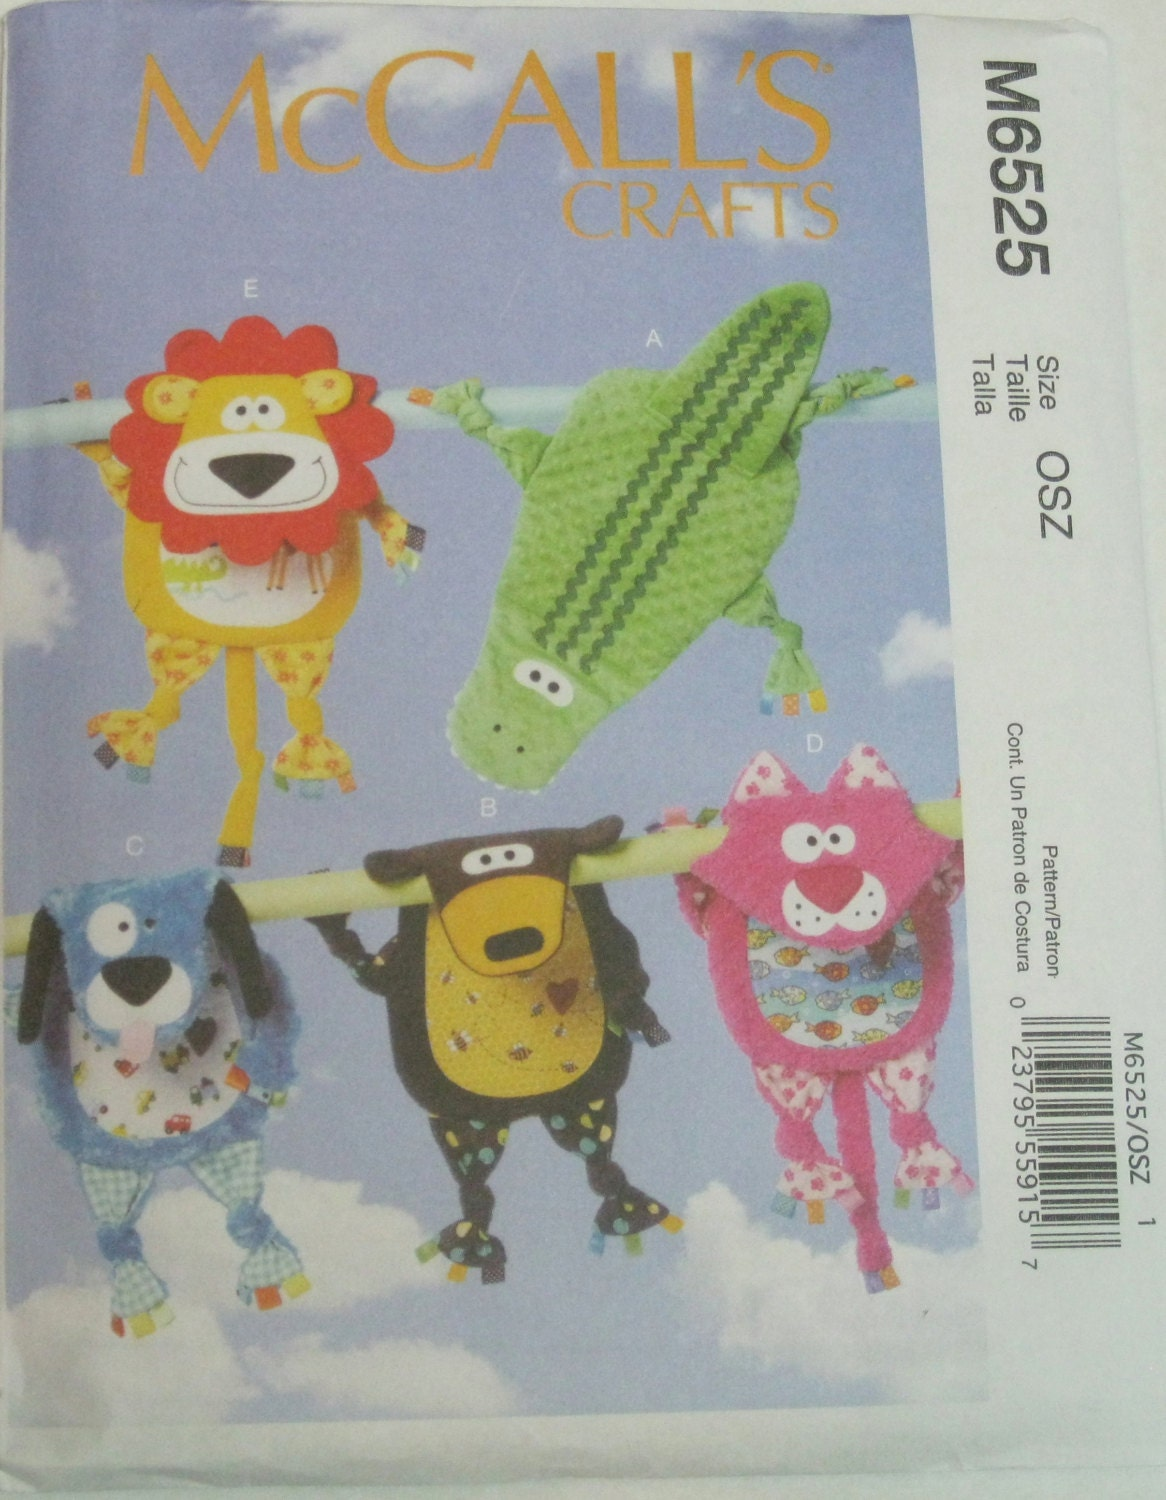 McCall's Crafts Pattern M6525 Blankies by Aviewfromasmallworld